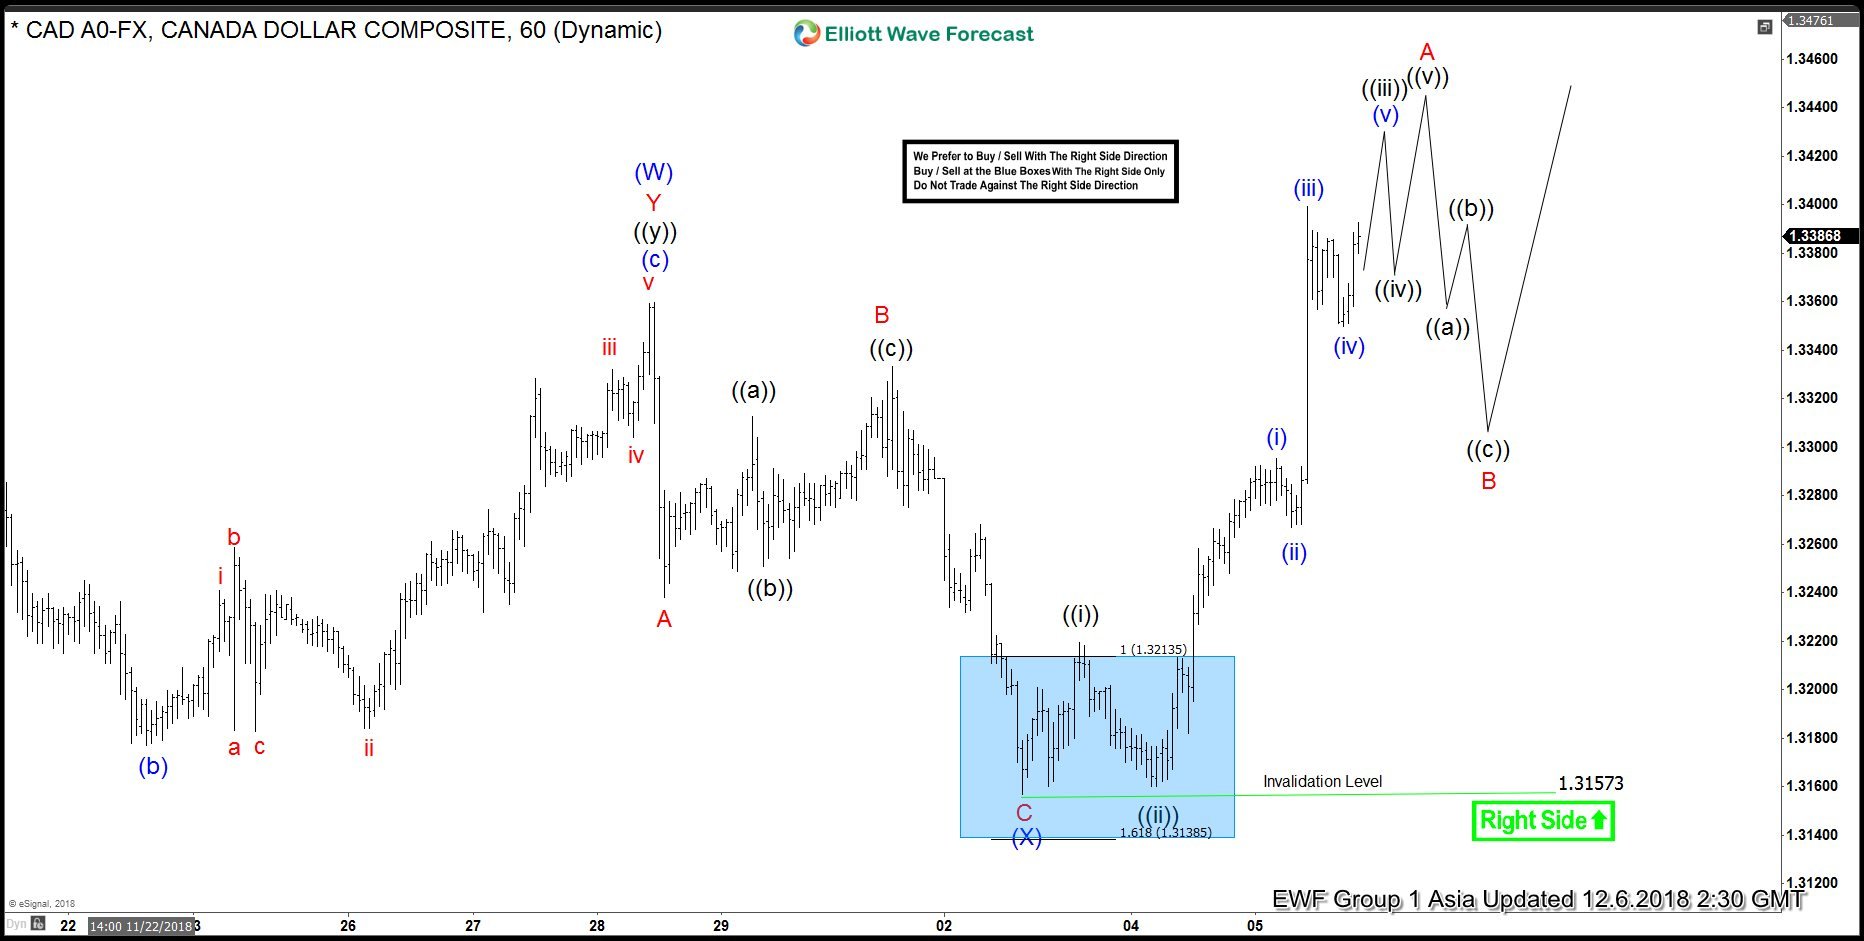 Elliott Wave View Supporting Further Strength in USDCAD